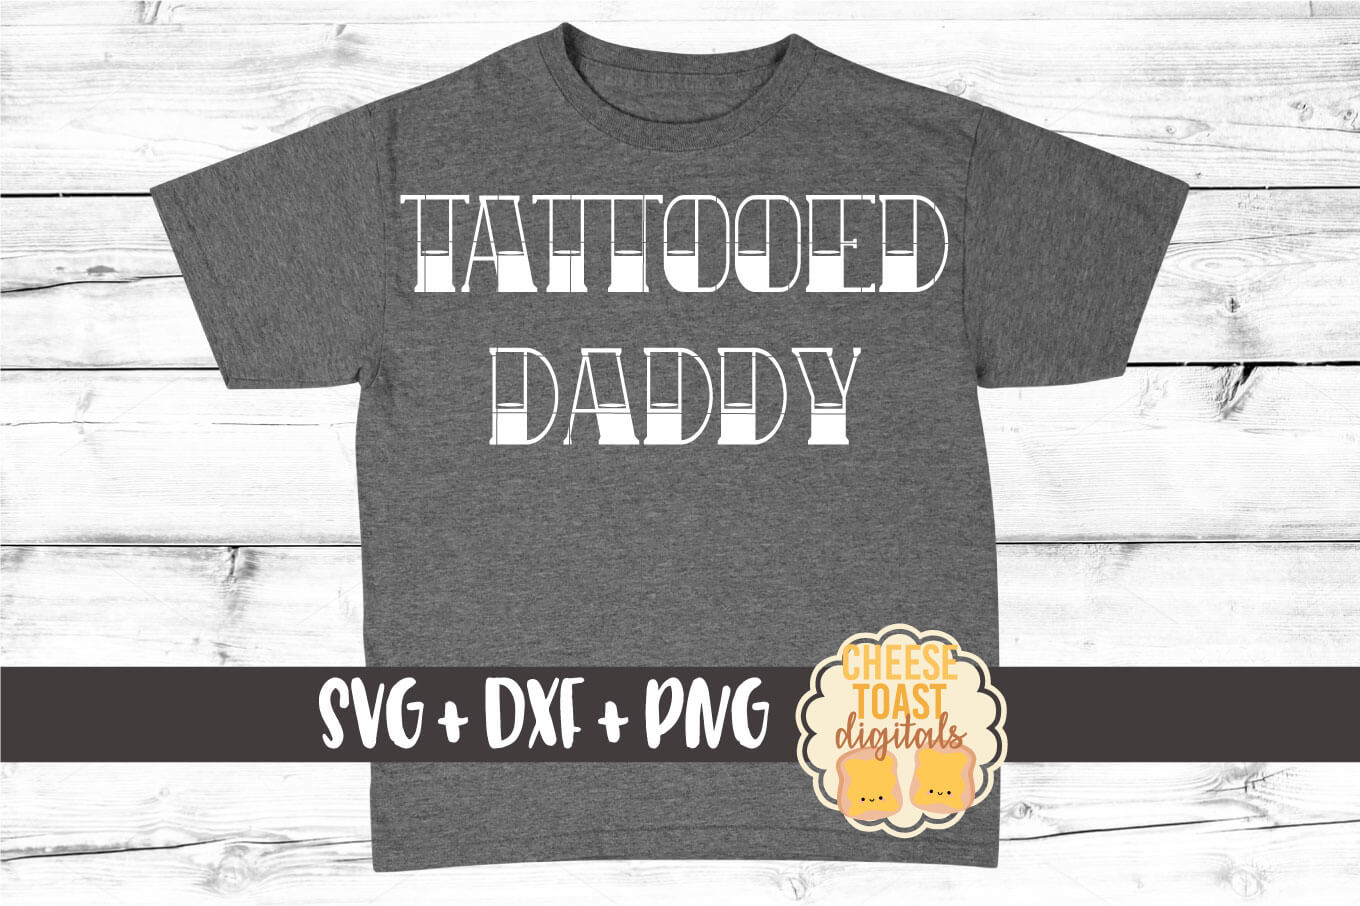 Tattooed Daddy